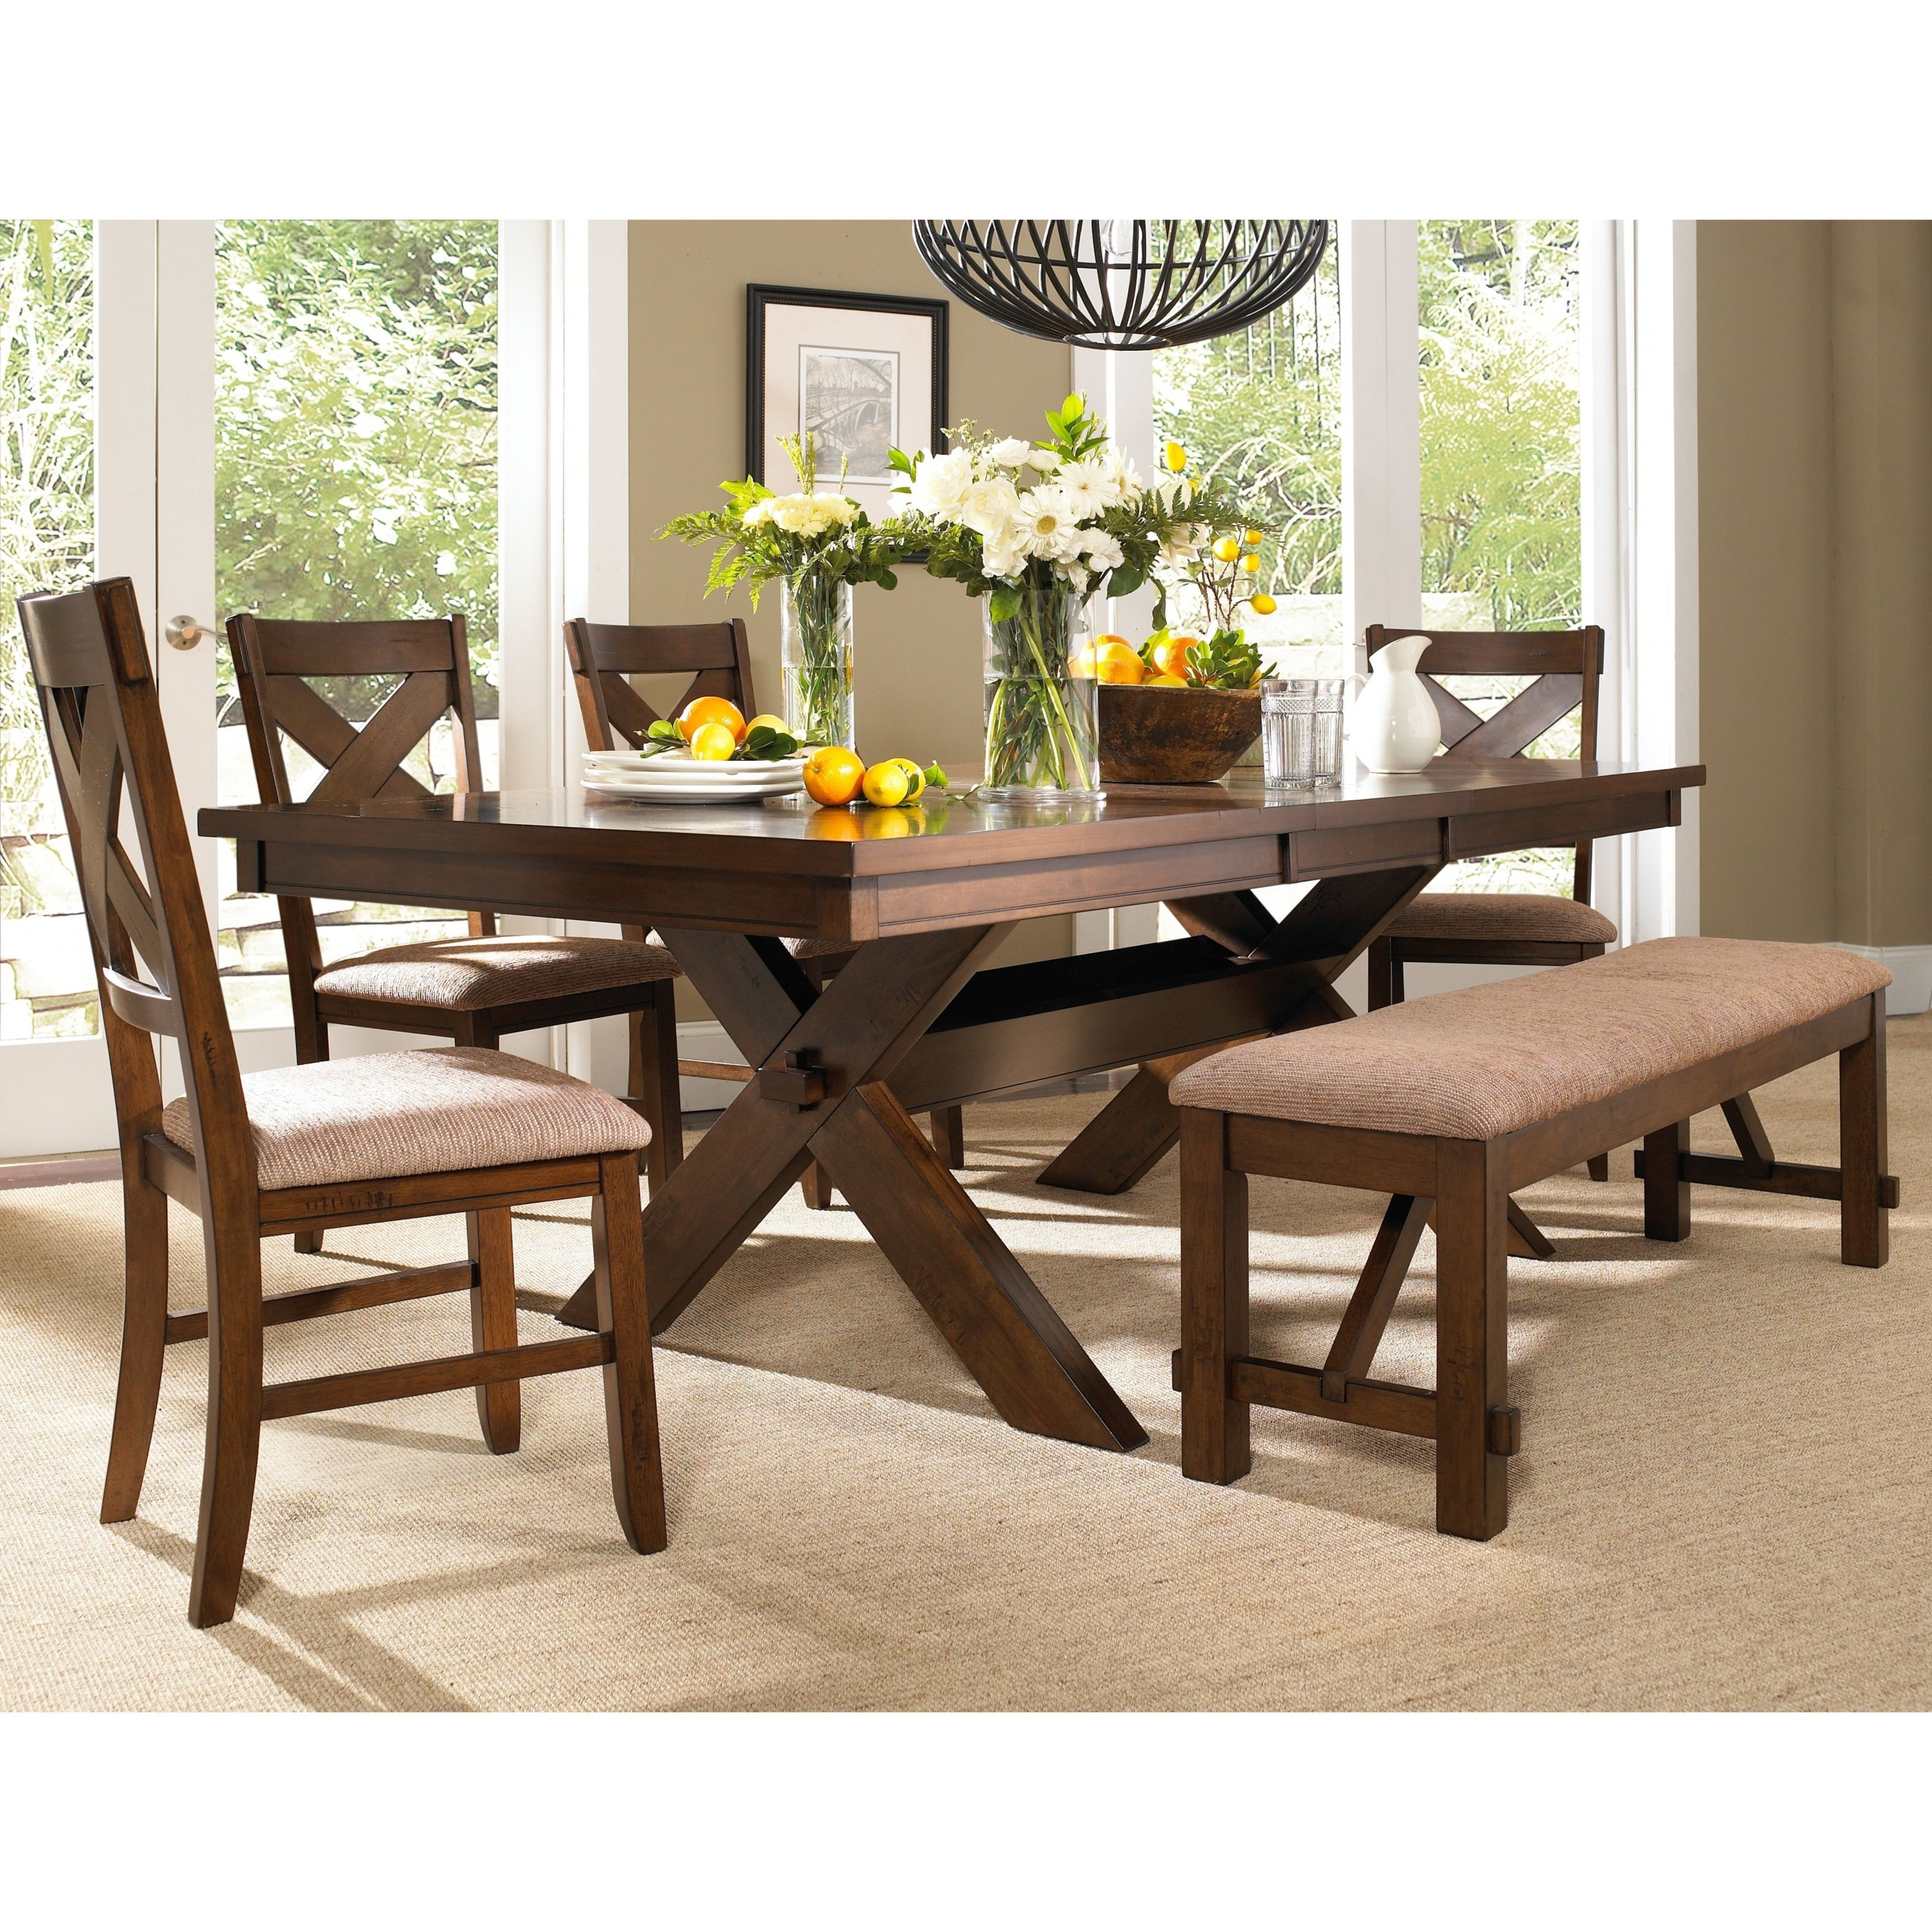 Roundhill Furniture 6 Piece Karven Solid Wood Dining Set With Table, 4  Chairs And